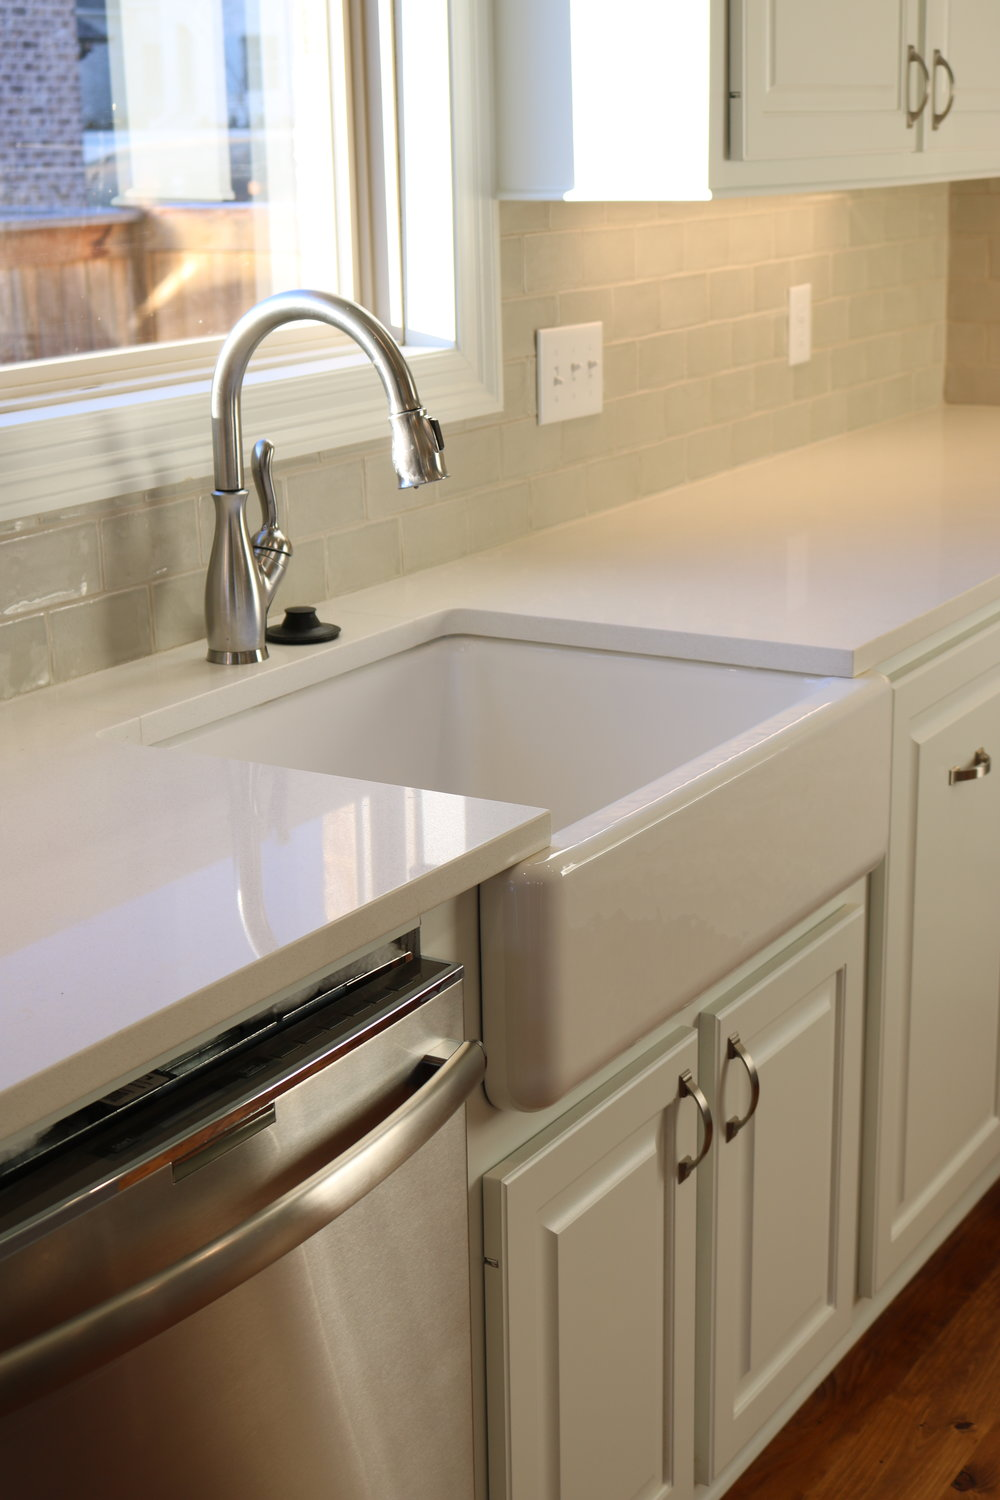 Creamy Froth with Farmhouse Sink, Ridgeland, MS